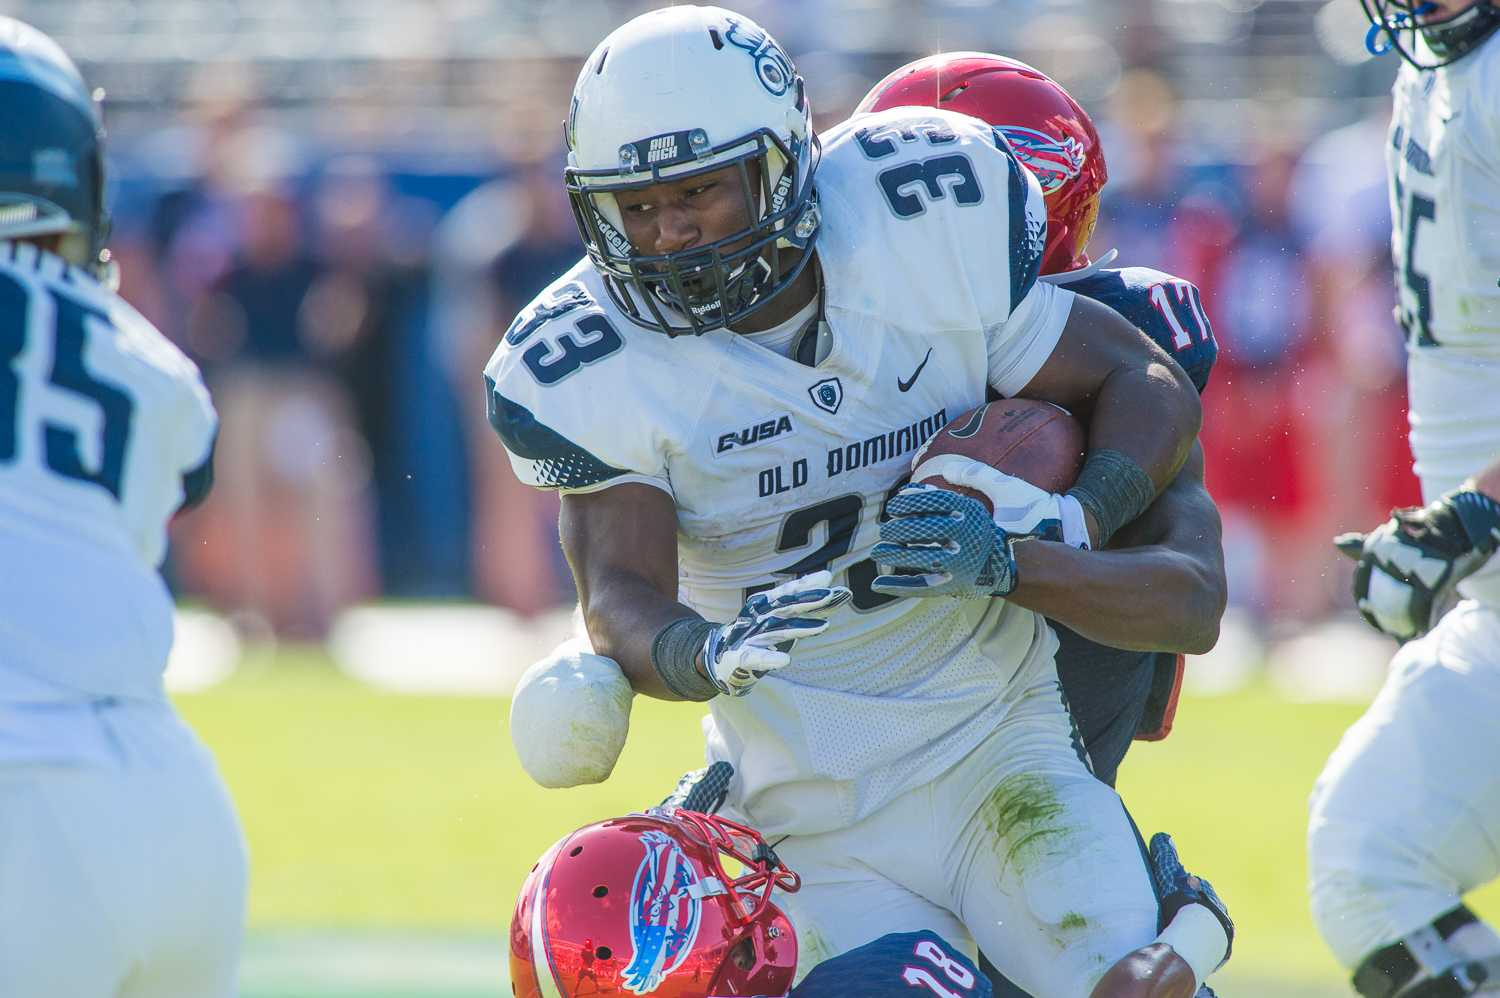 Old Dominion running back Ray Lawry tries to break free from Owls safety Damian Parms. Lawry picked up five yards on the play, and rushed for 213 yards in total.